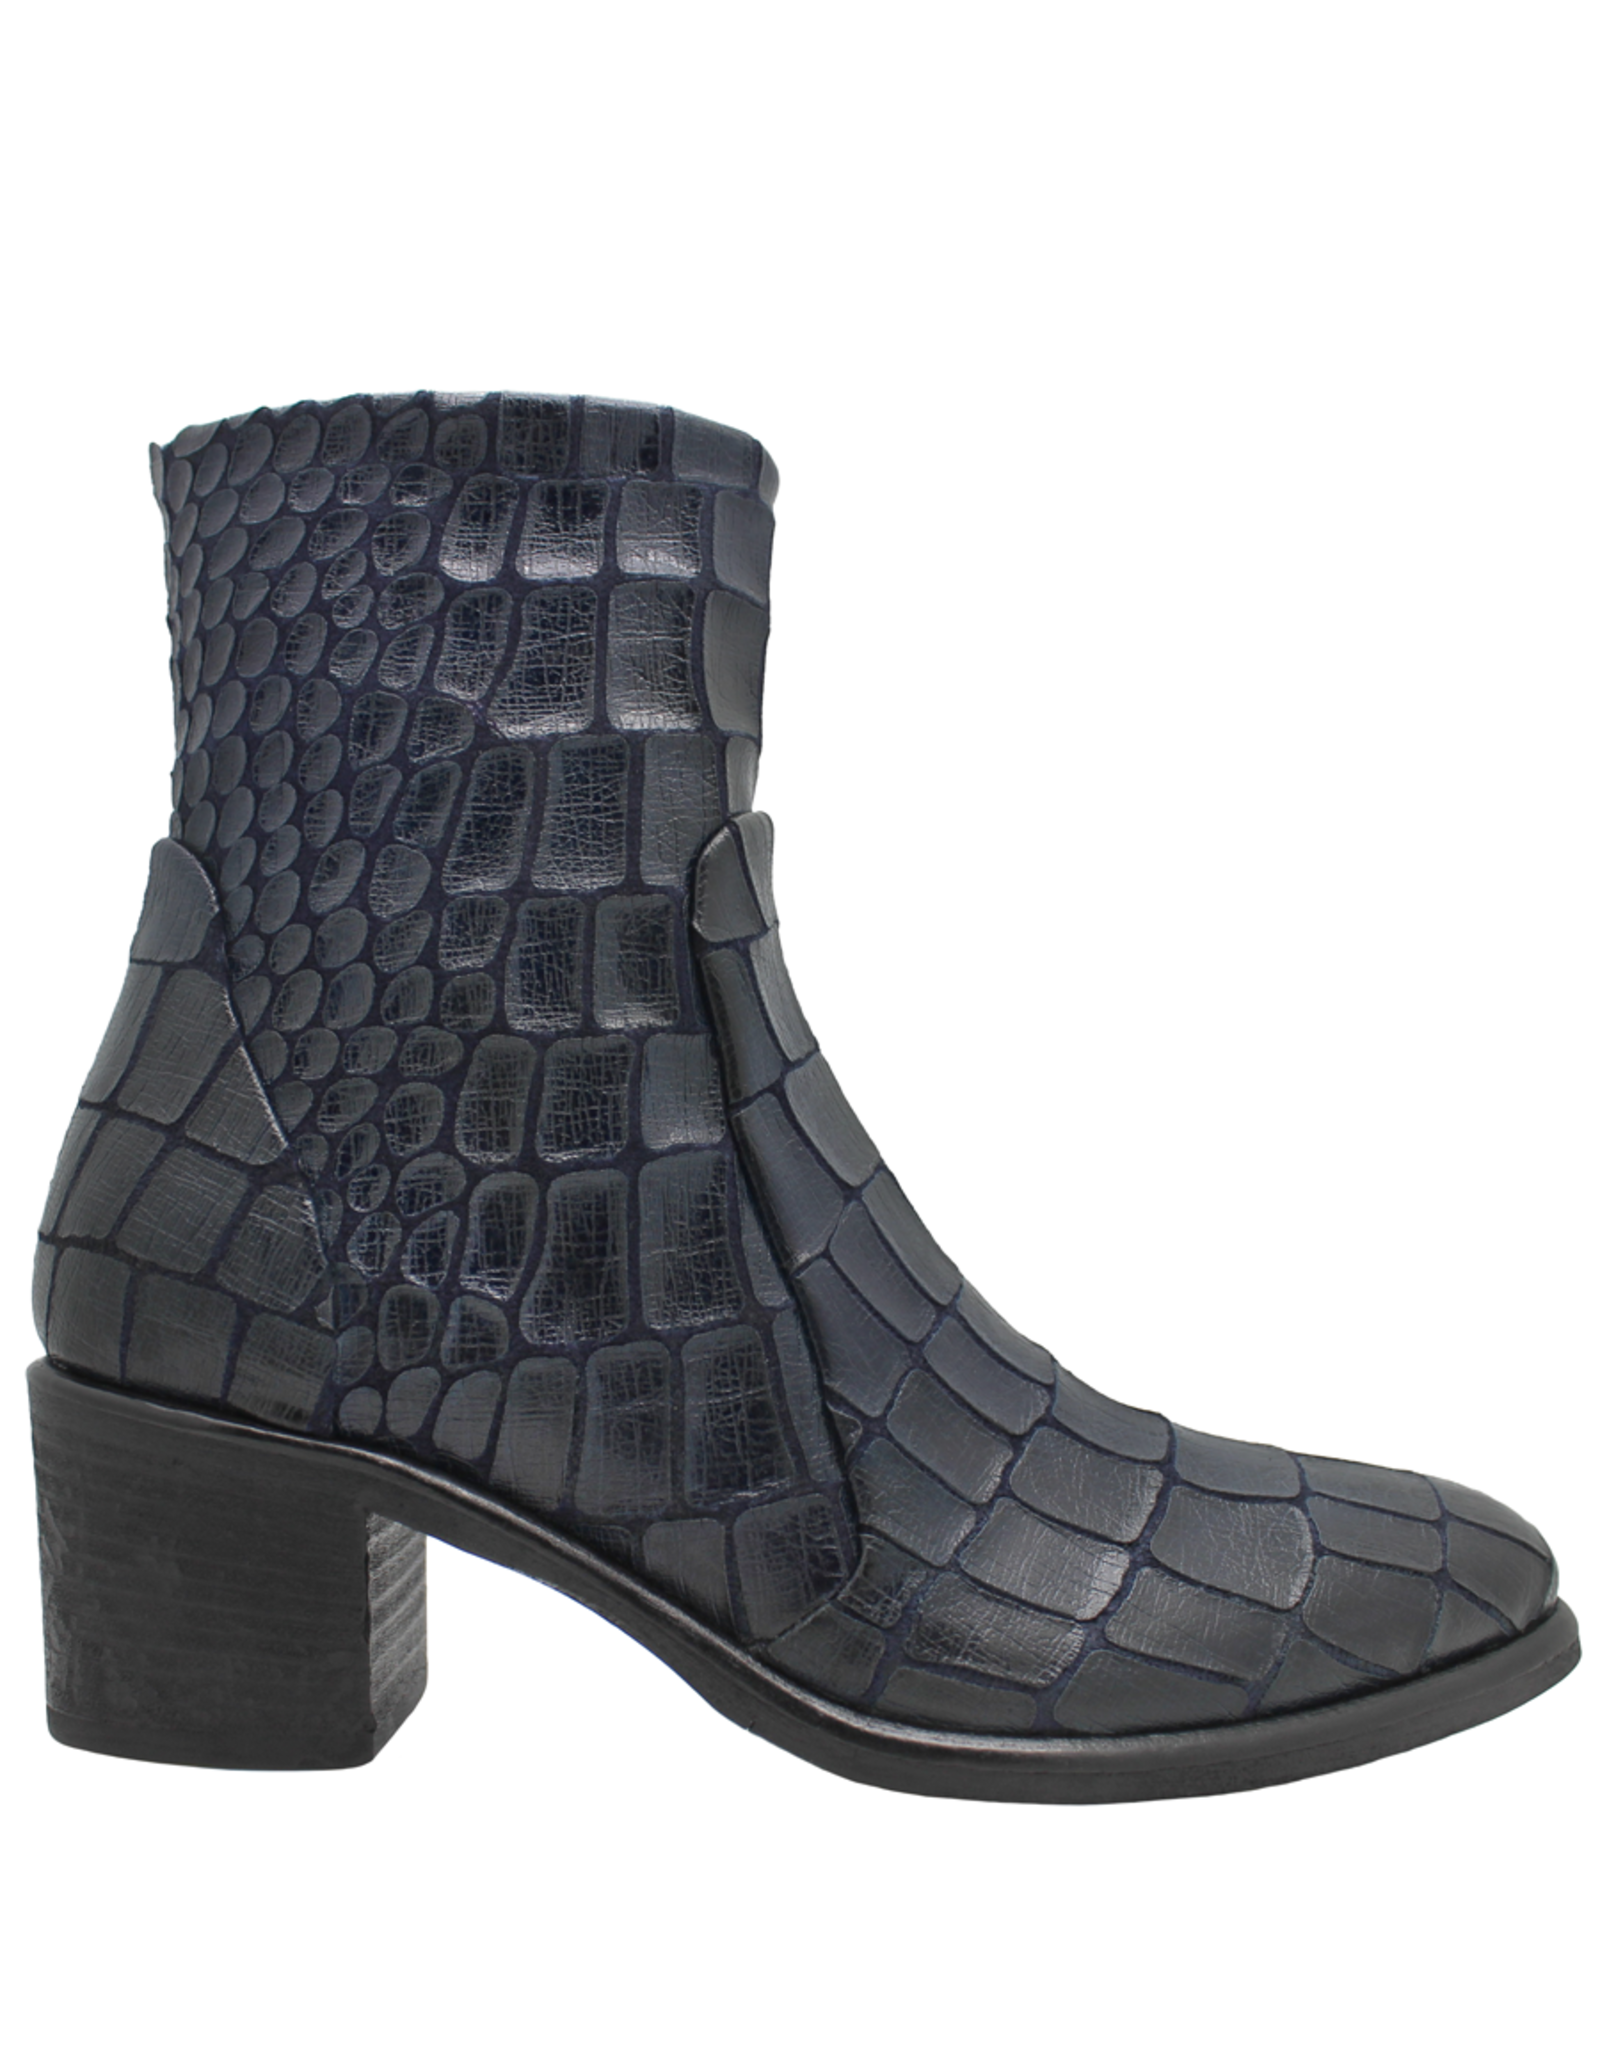 Strategia Strategia Navy Blue Gator Ankle Boot With Side Zipper 3913